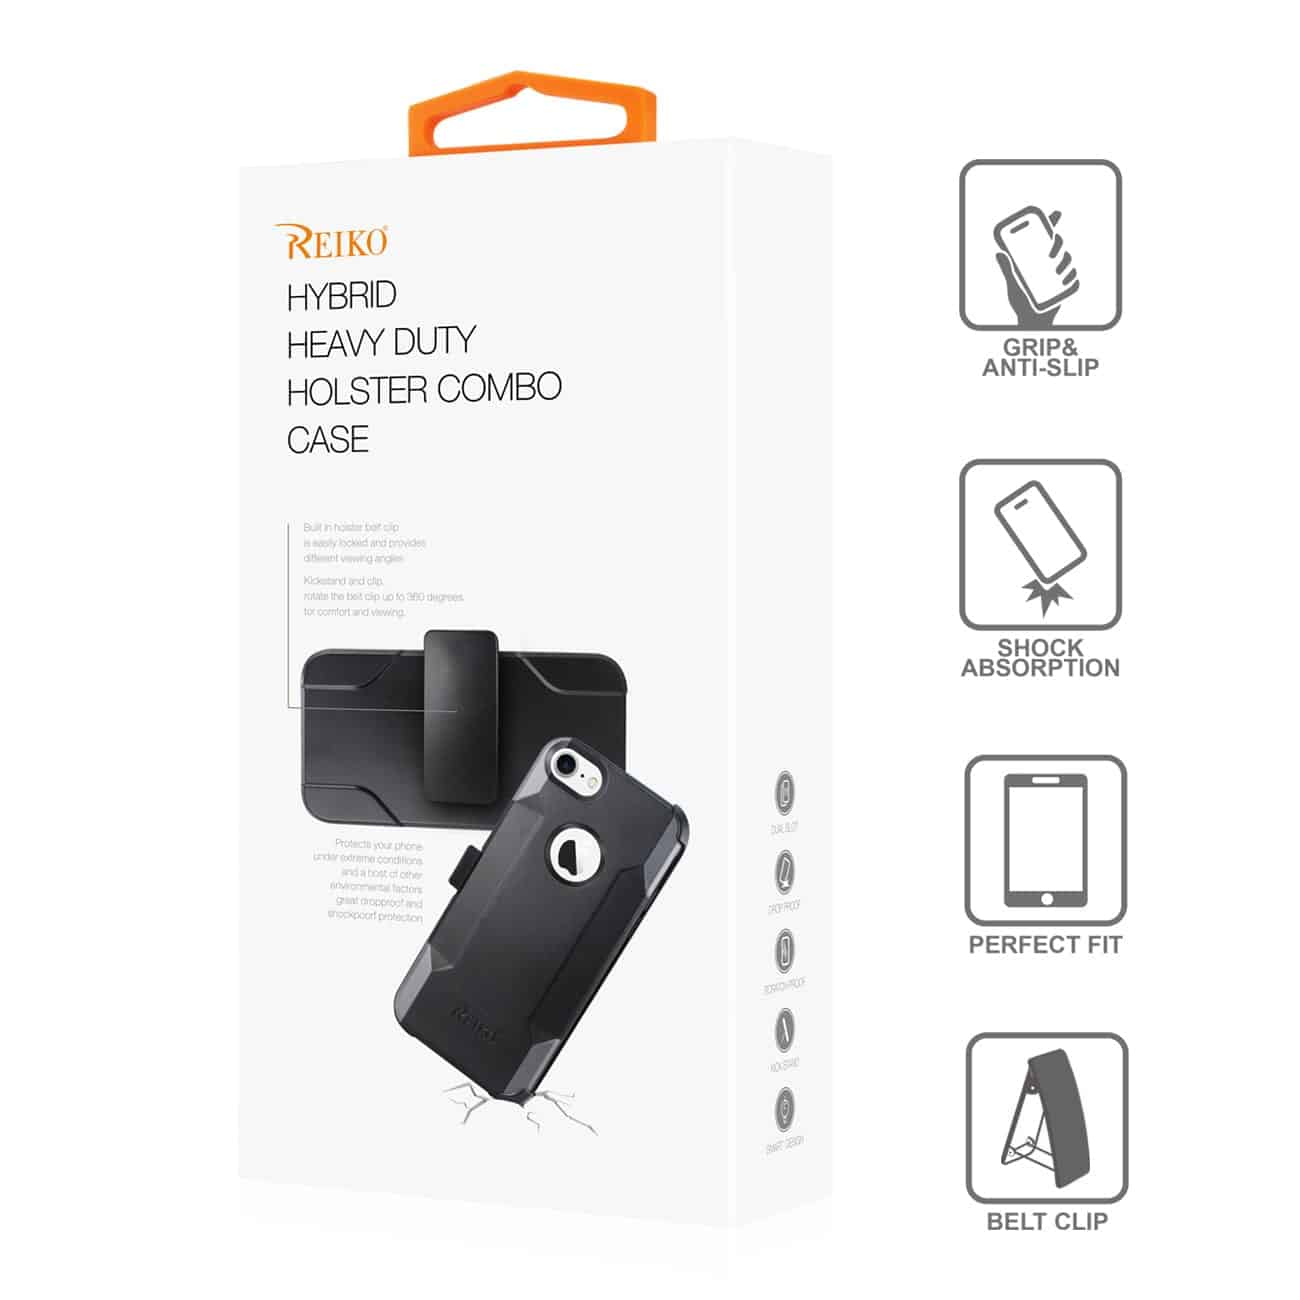 Samsung Galaxy S9 3-In-1 Hybrid Heavy Duty Holster Combo Case In Black